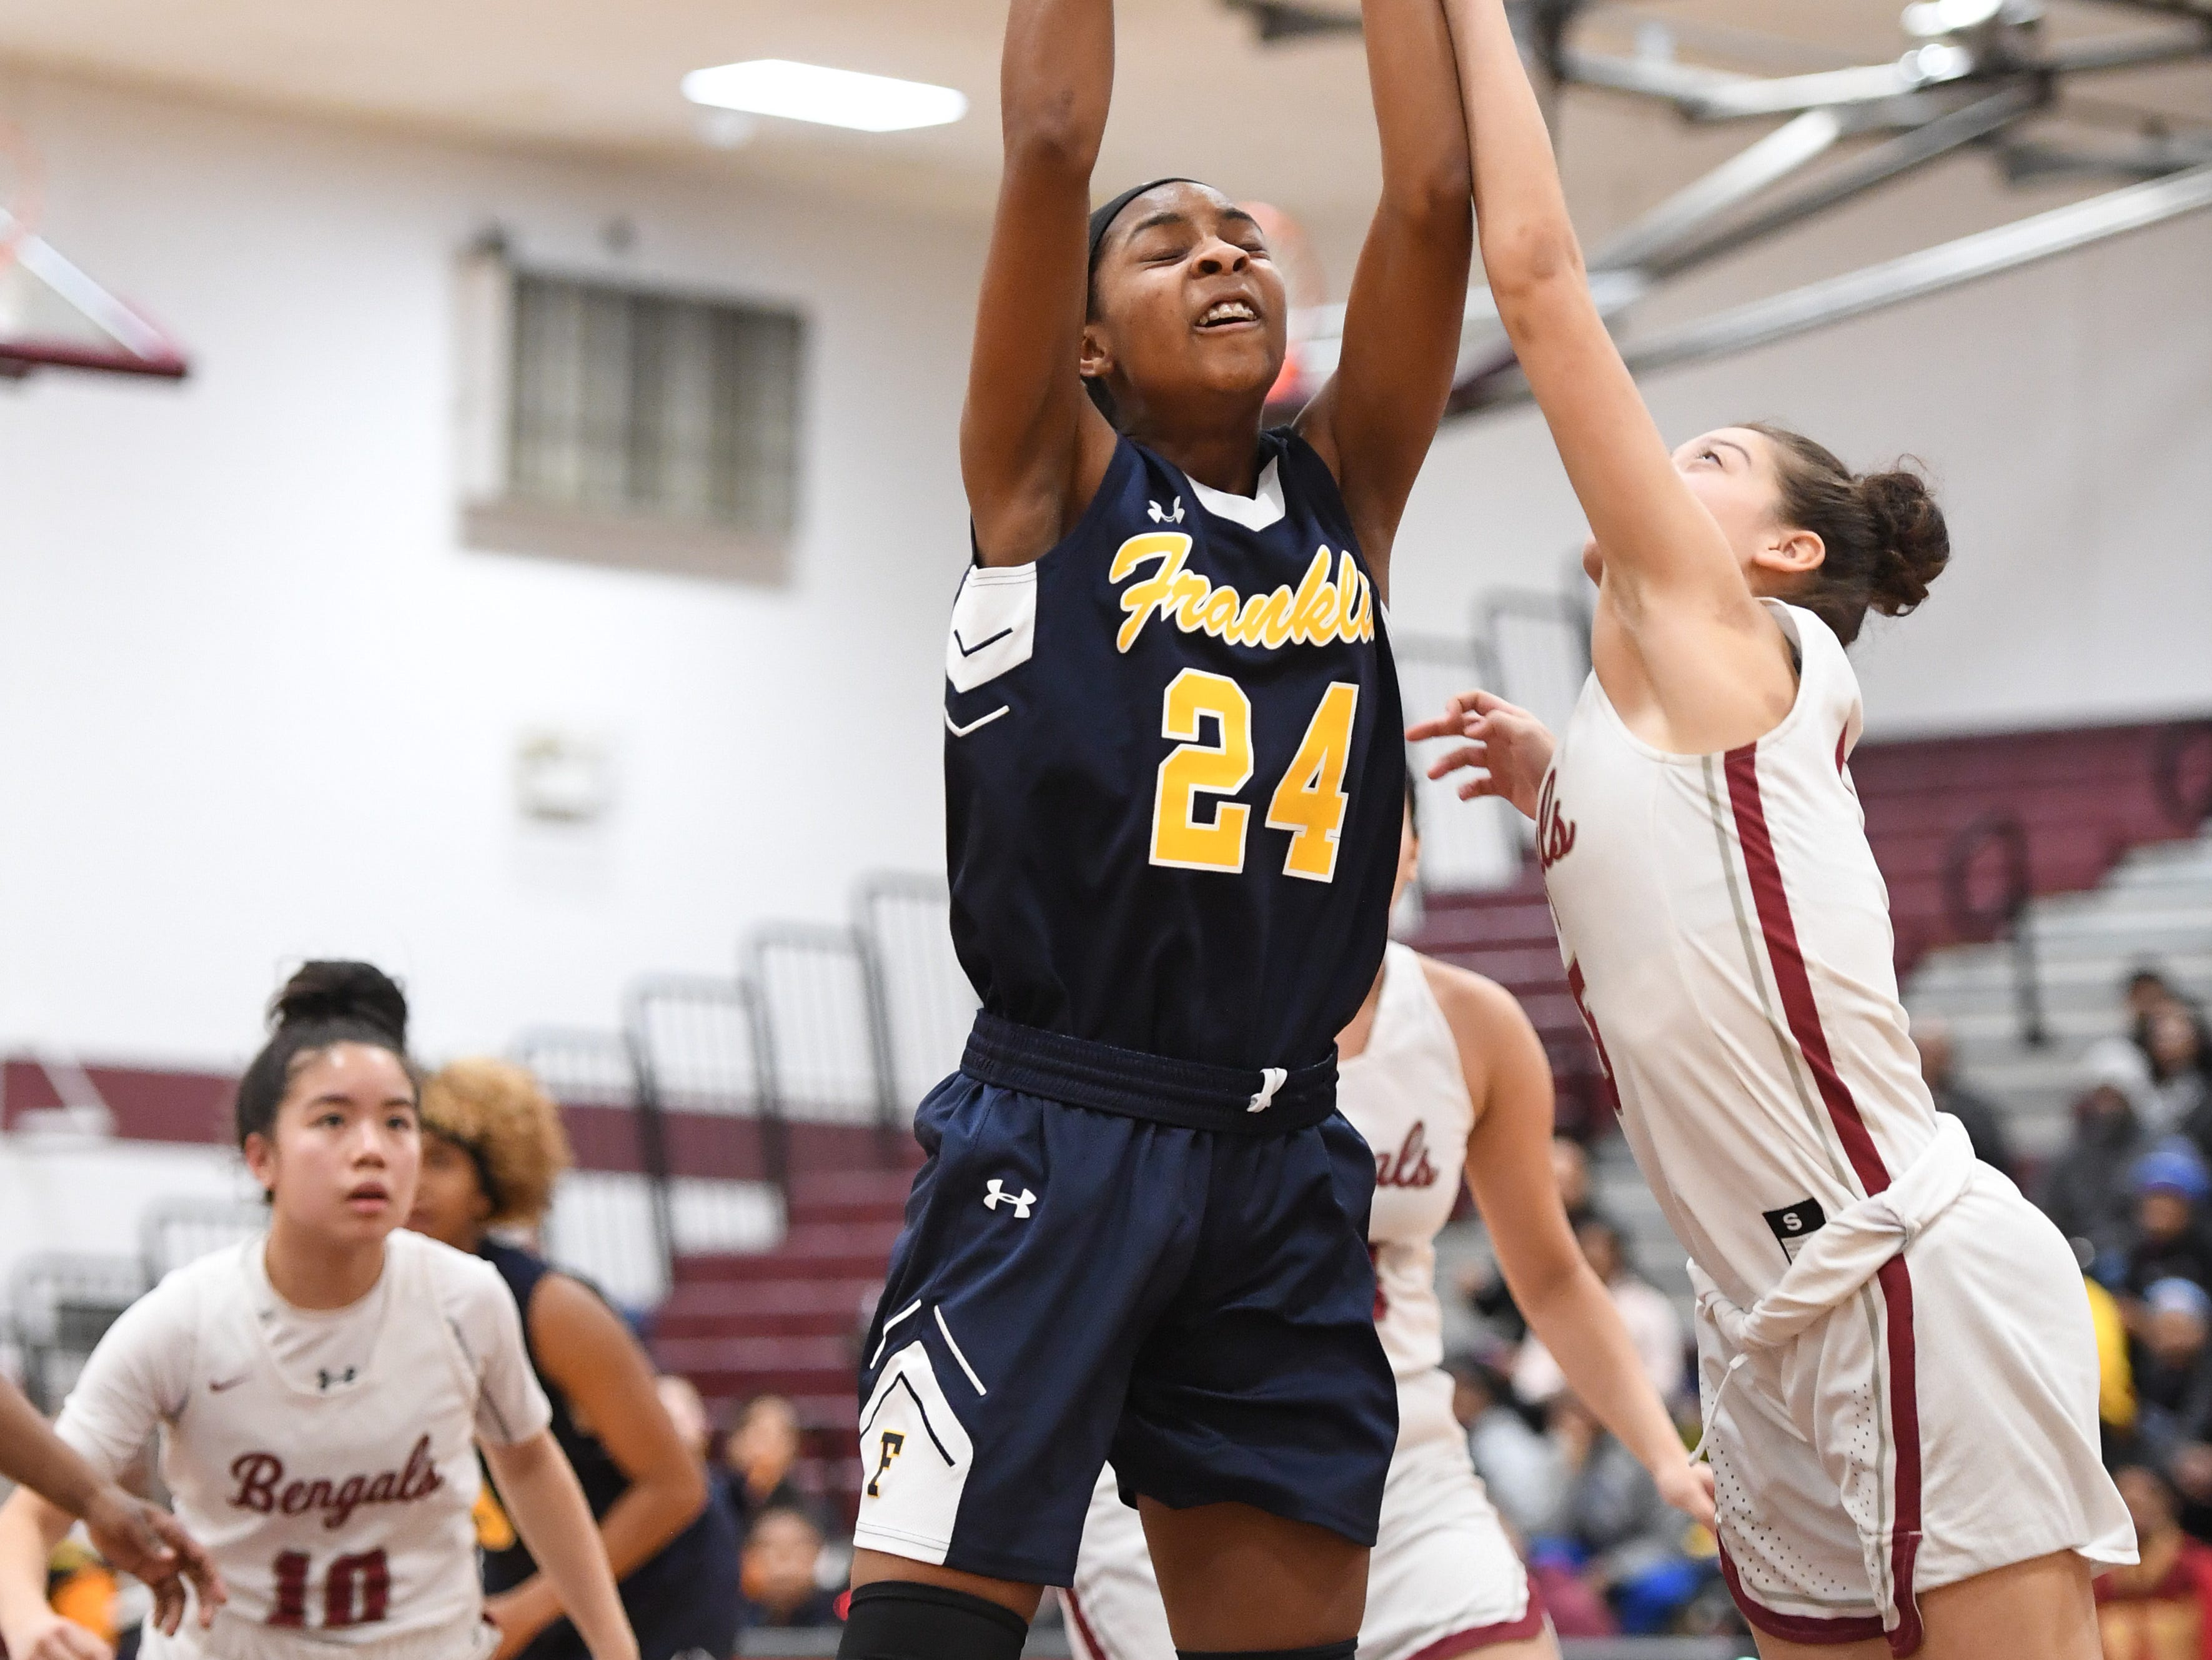 Franklin vs. Bloomfield in the girls basketball Group IV semifinal at Union High School on Thursday, March 7, 2019. F #24 Christina Midgette grabs a rebound.